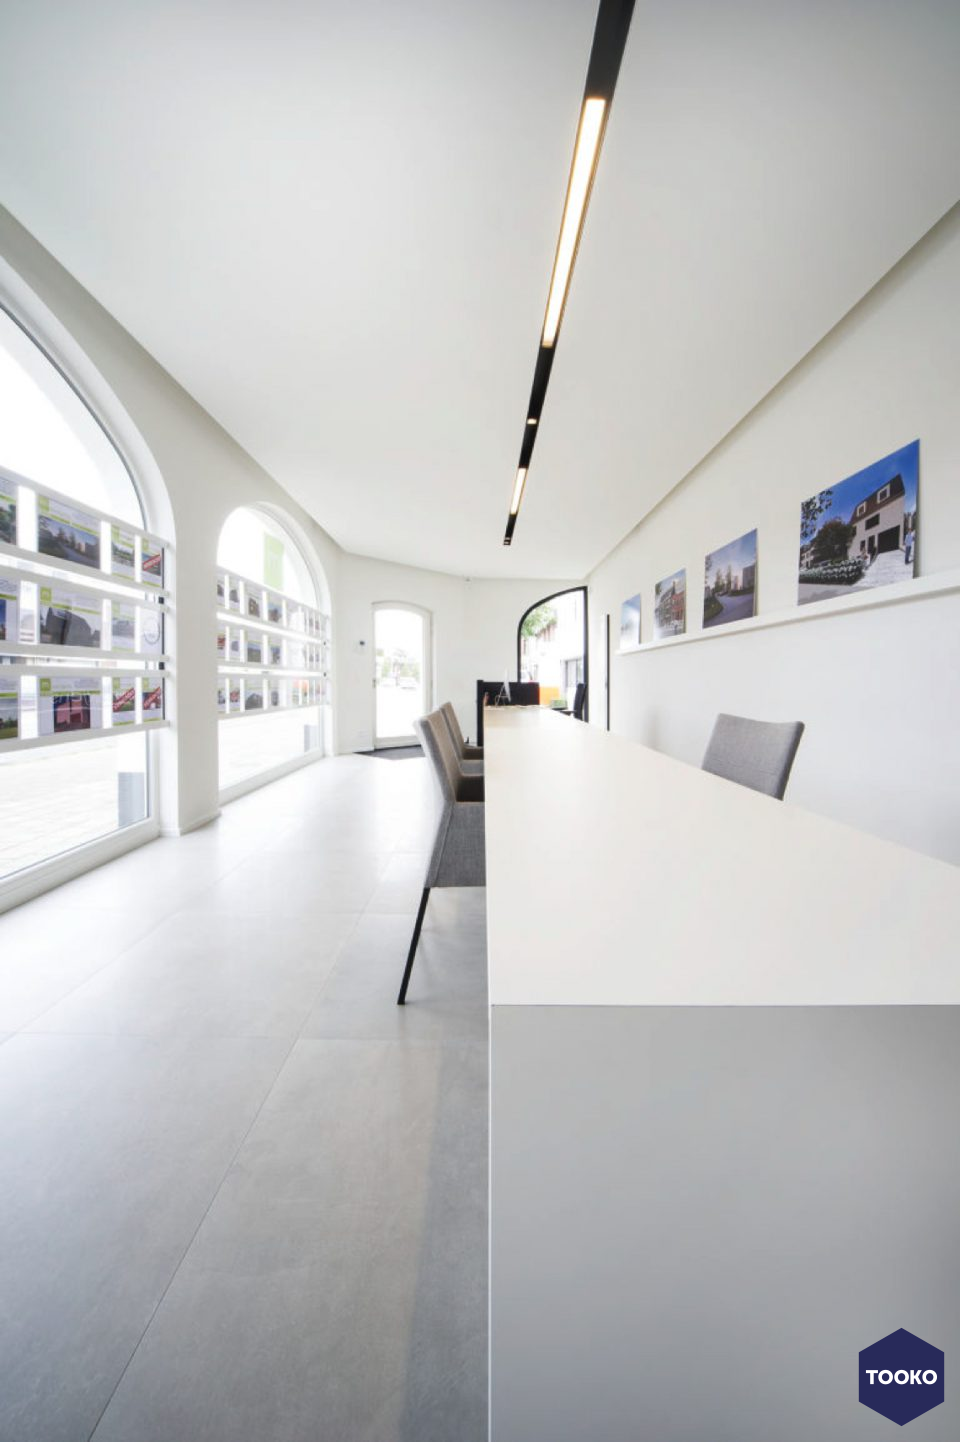 imore interieur architectuur - Office Immo Mintjens